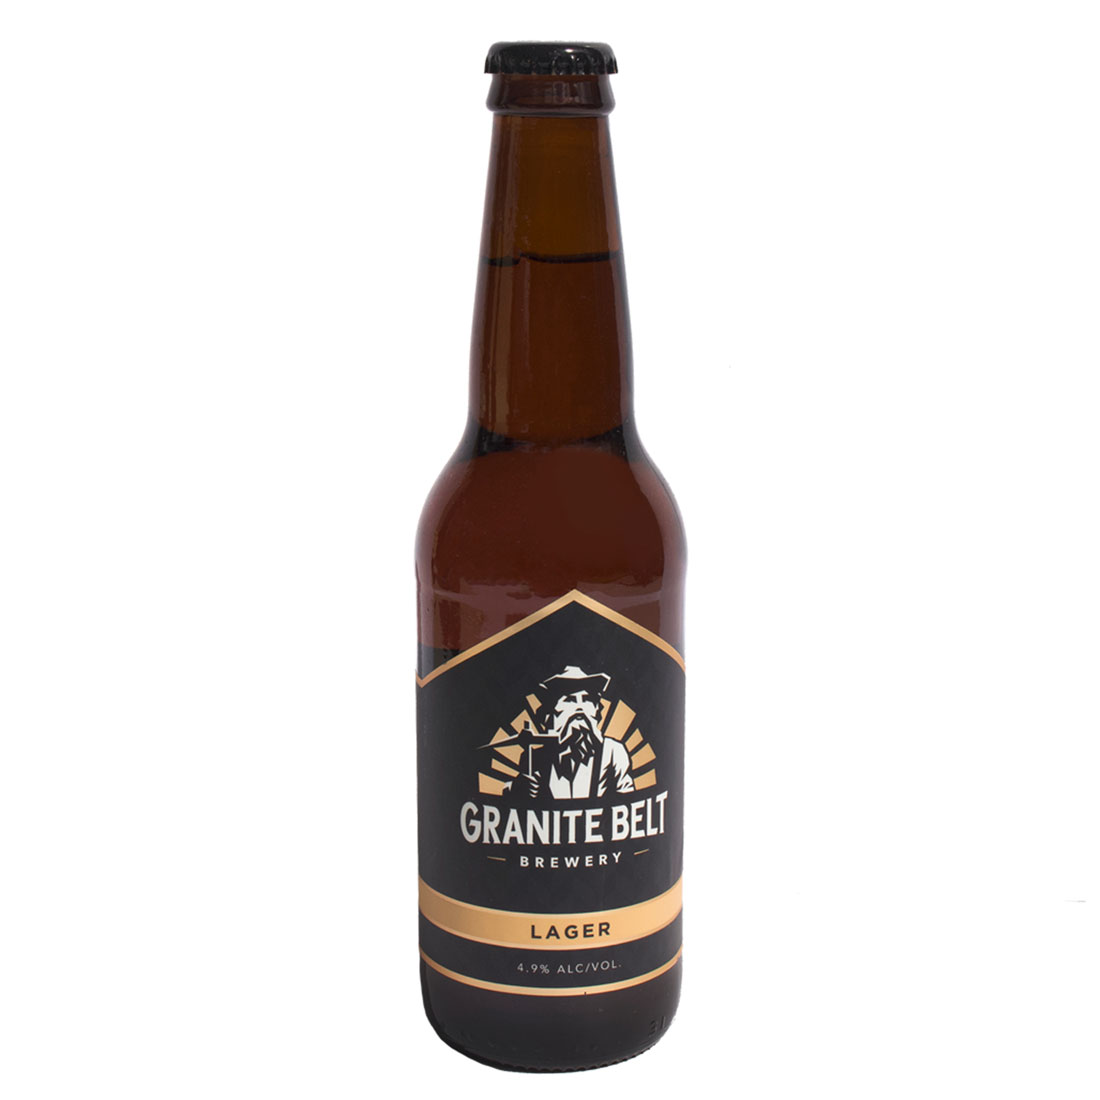 Lager bottle by Granite Belt Brewery